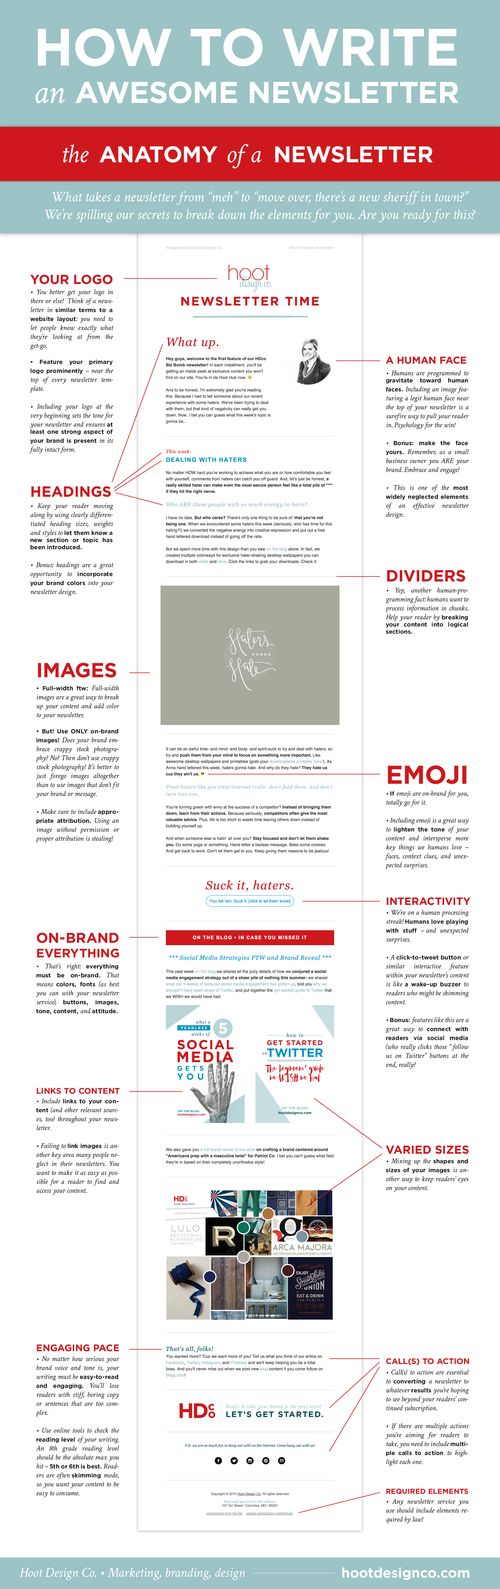 These are the key elements to writing a good newsletter. Keep them in mind when you go to write your next one!   Hoot Design Co.